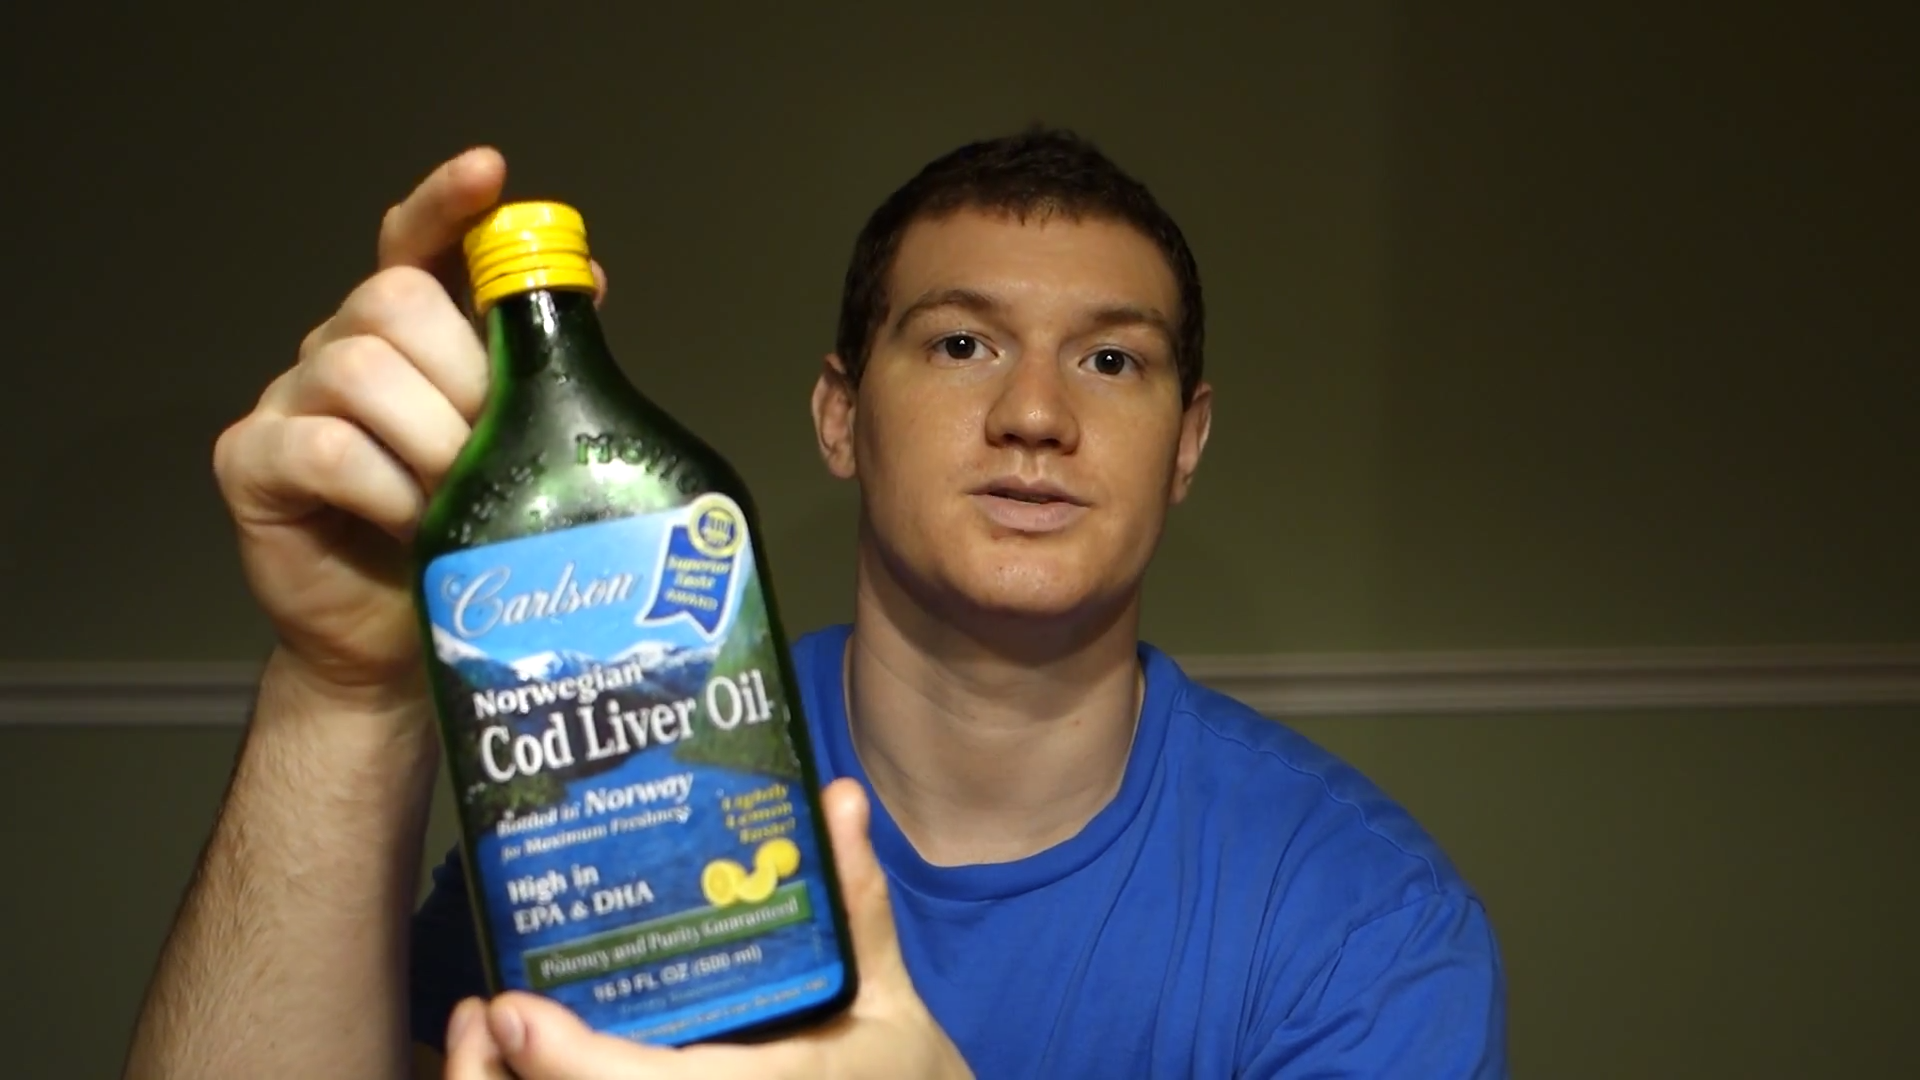 Carlson s cod liver oil review and benefits for Fish oil for autism